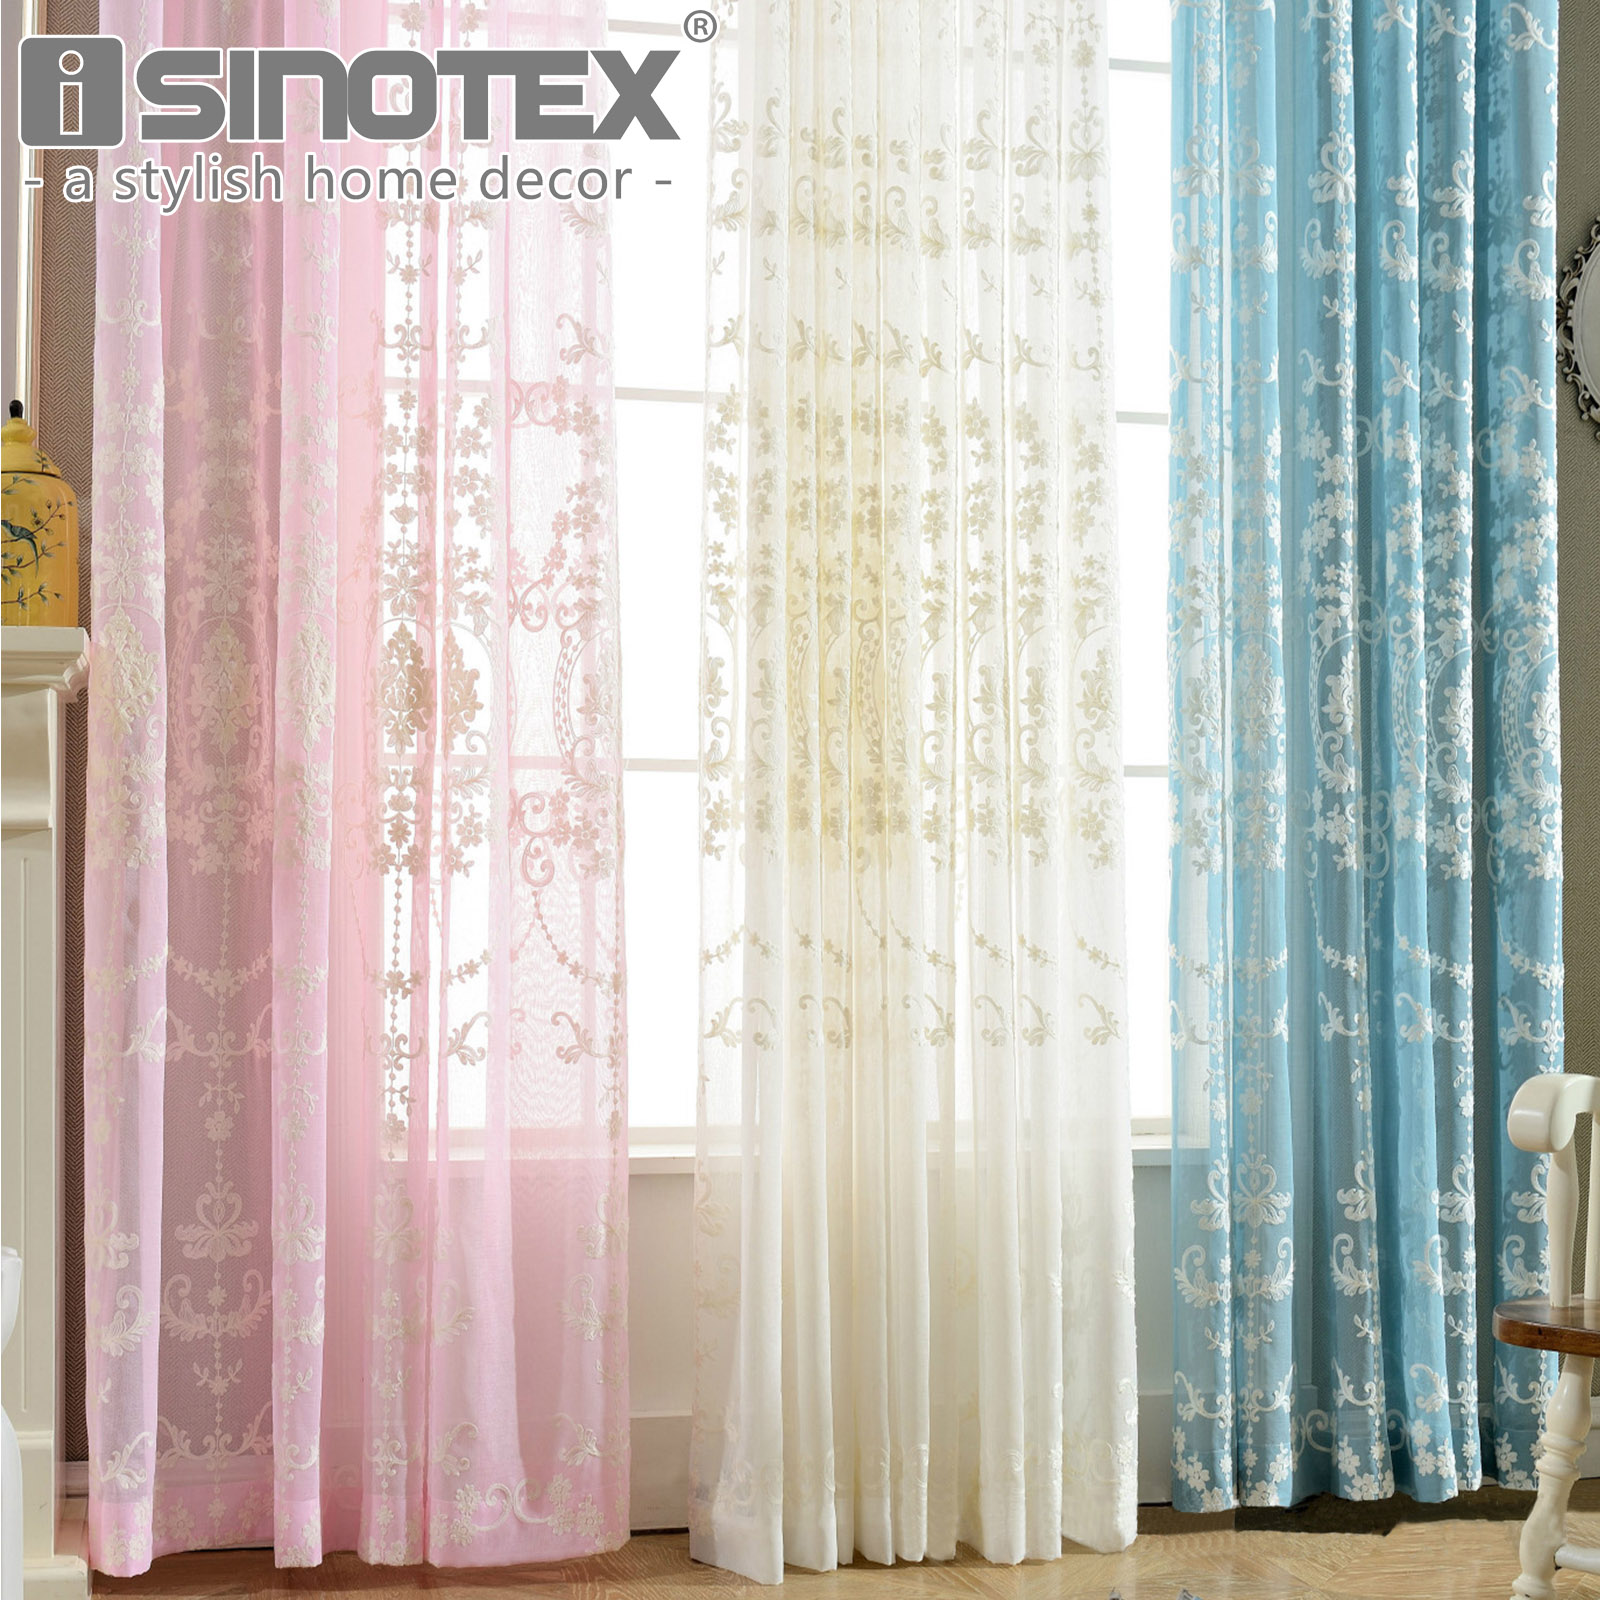 Jacquard Curtains Us 12 58 European Style Jacquard Curtains Embroidered Baroque Floral Design Window Treatment Linen Sheer Curtain Drapes Pink White Colors In